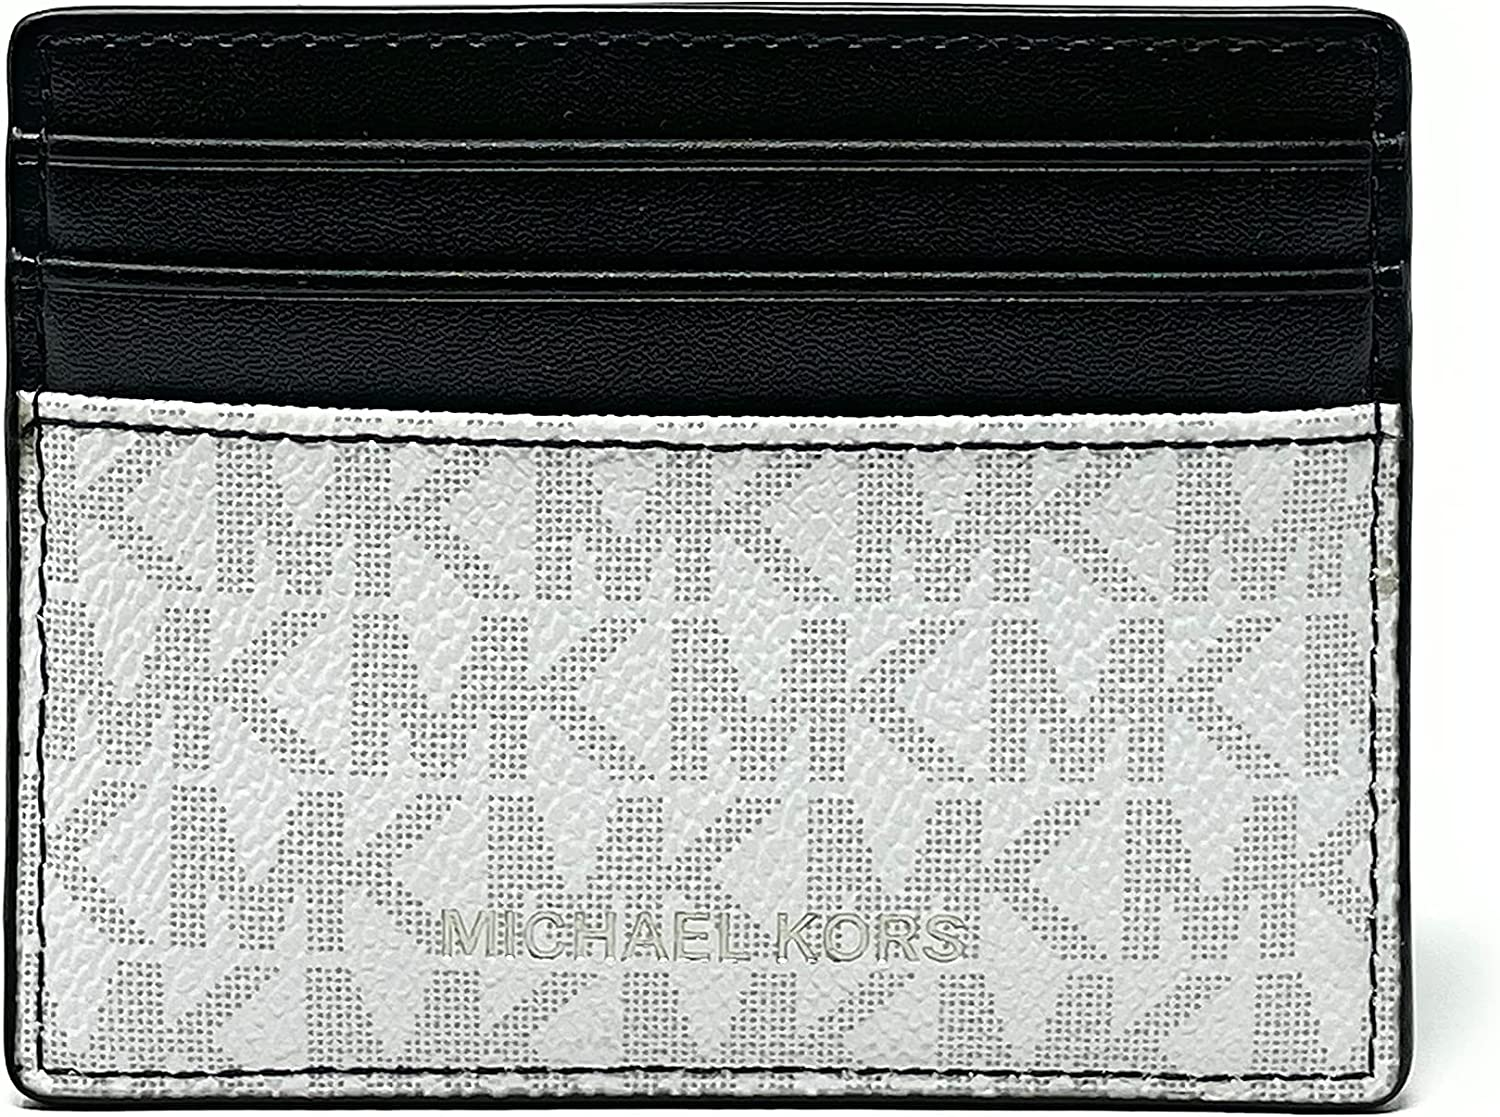 Michael Kors Time sale Cooper Men's Popular product Tall Credit Case Wallet Card